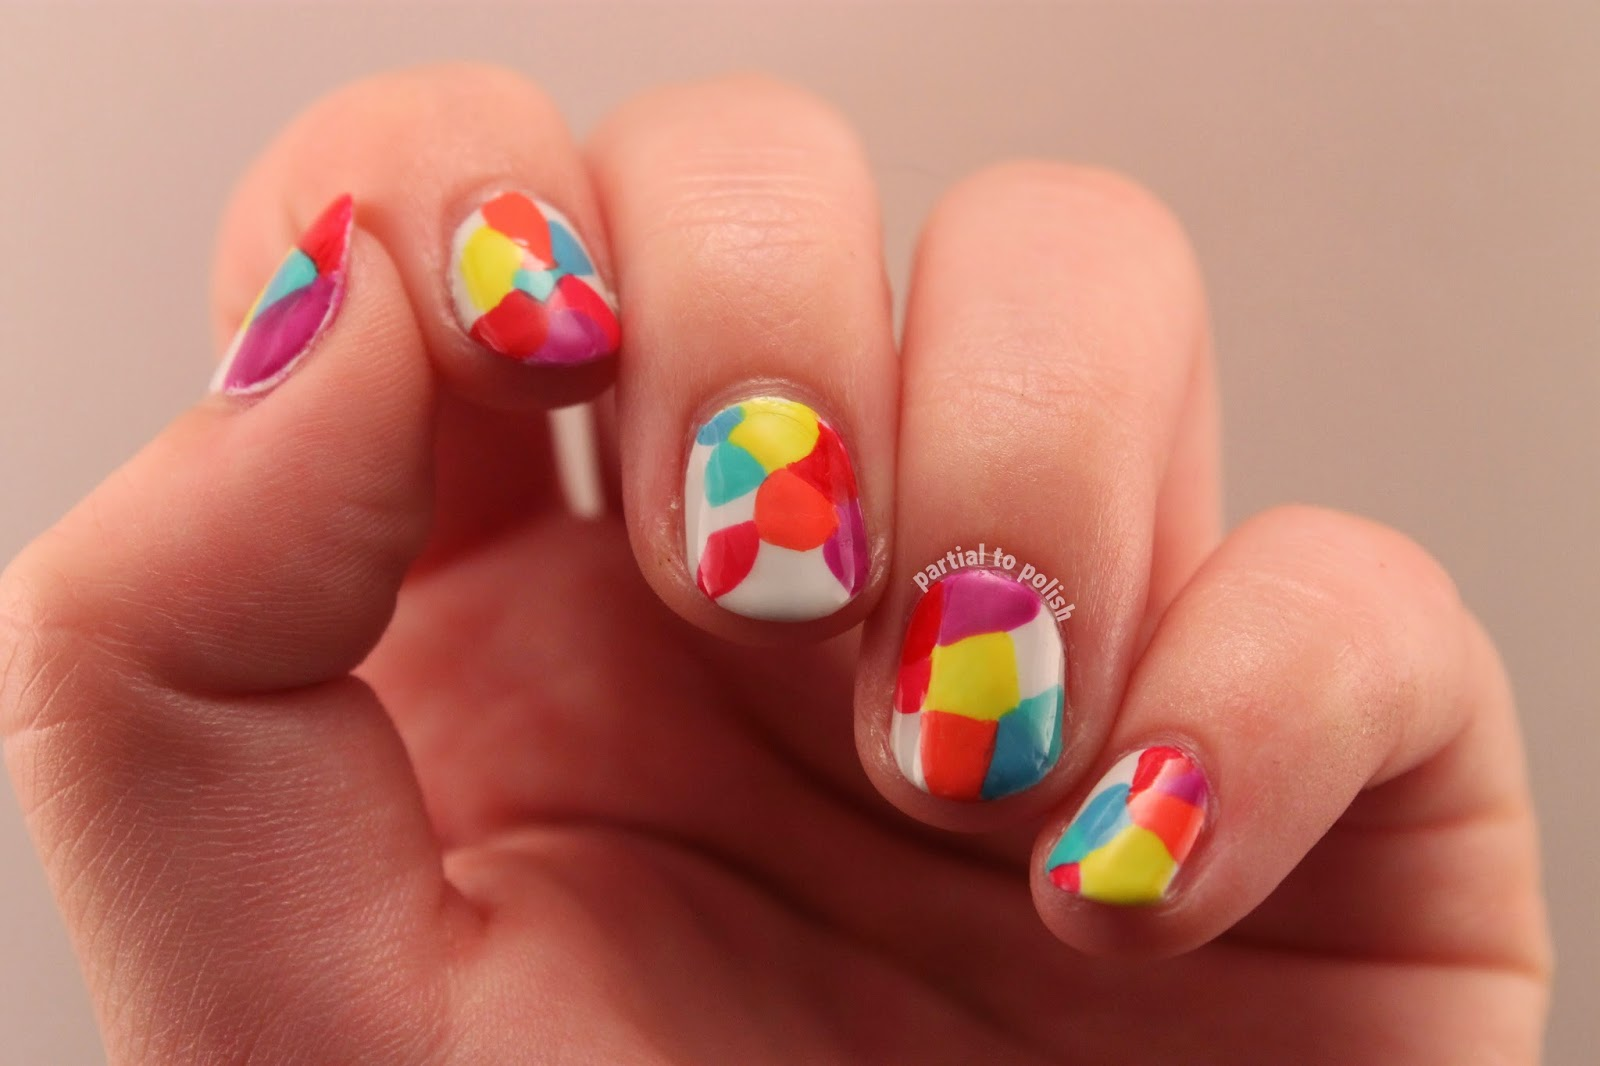 Rainbow Geometric Nail Art Inspired by MrCandiipants and my Samsung Galaxy S5 Background!